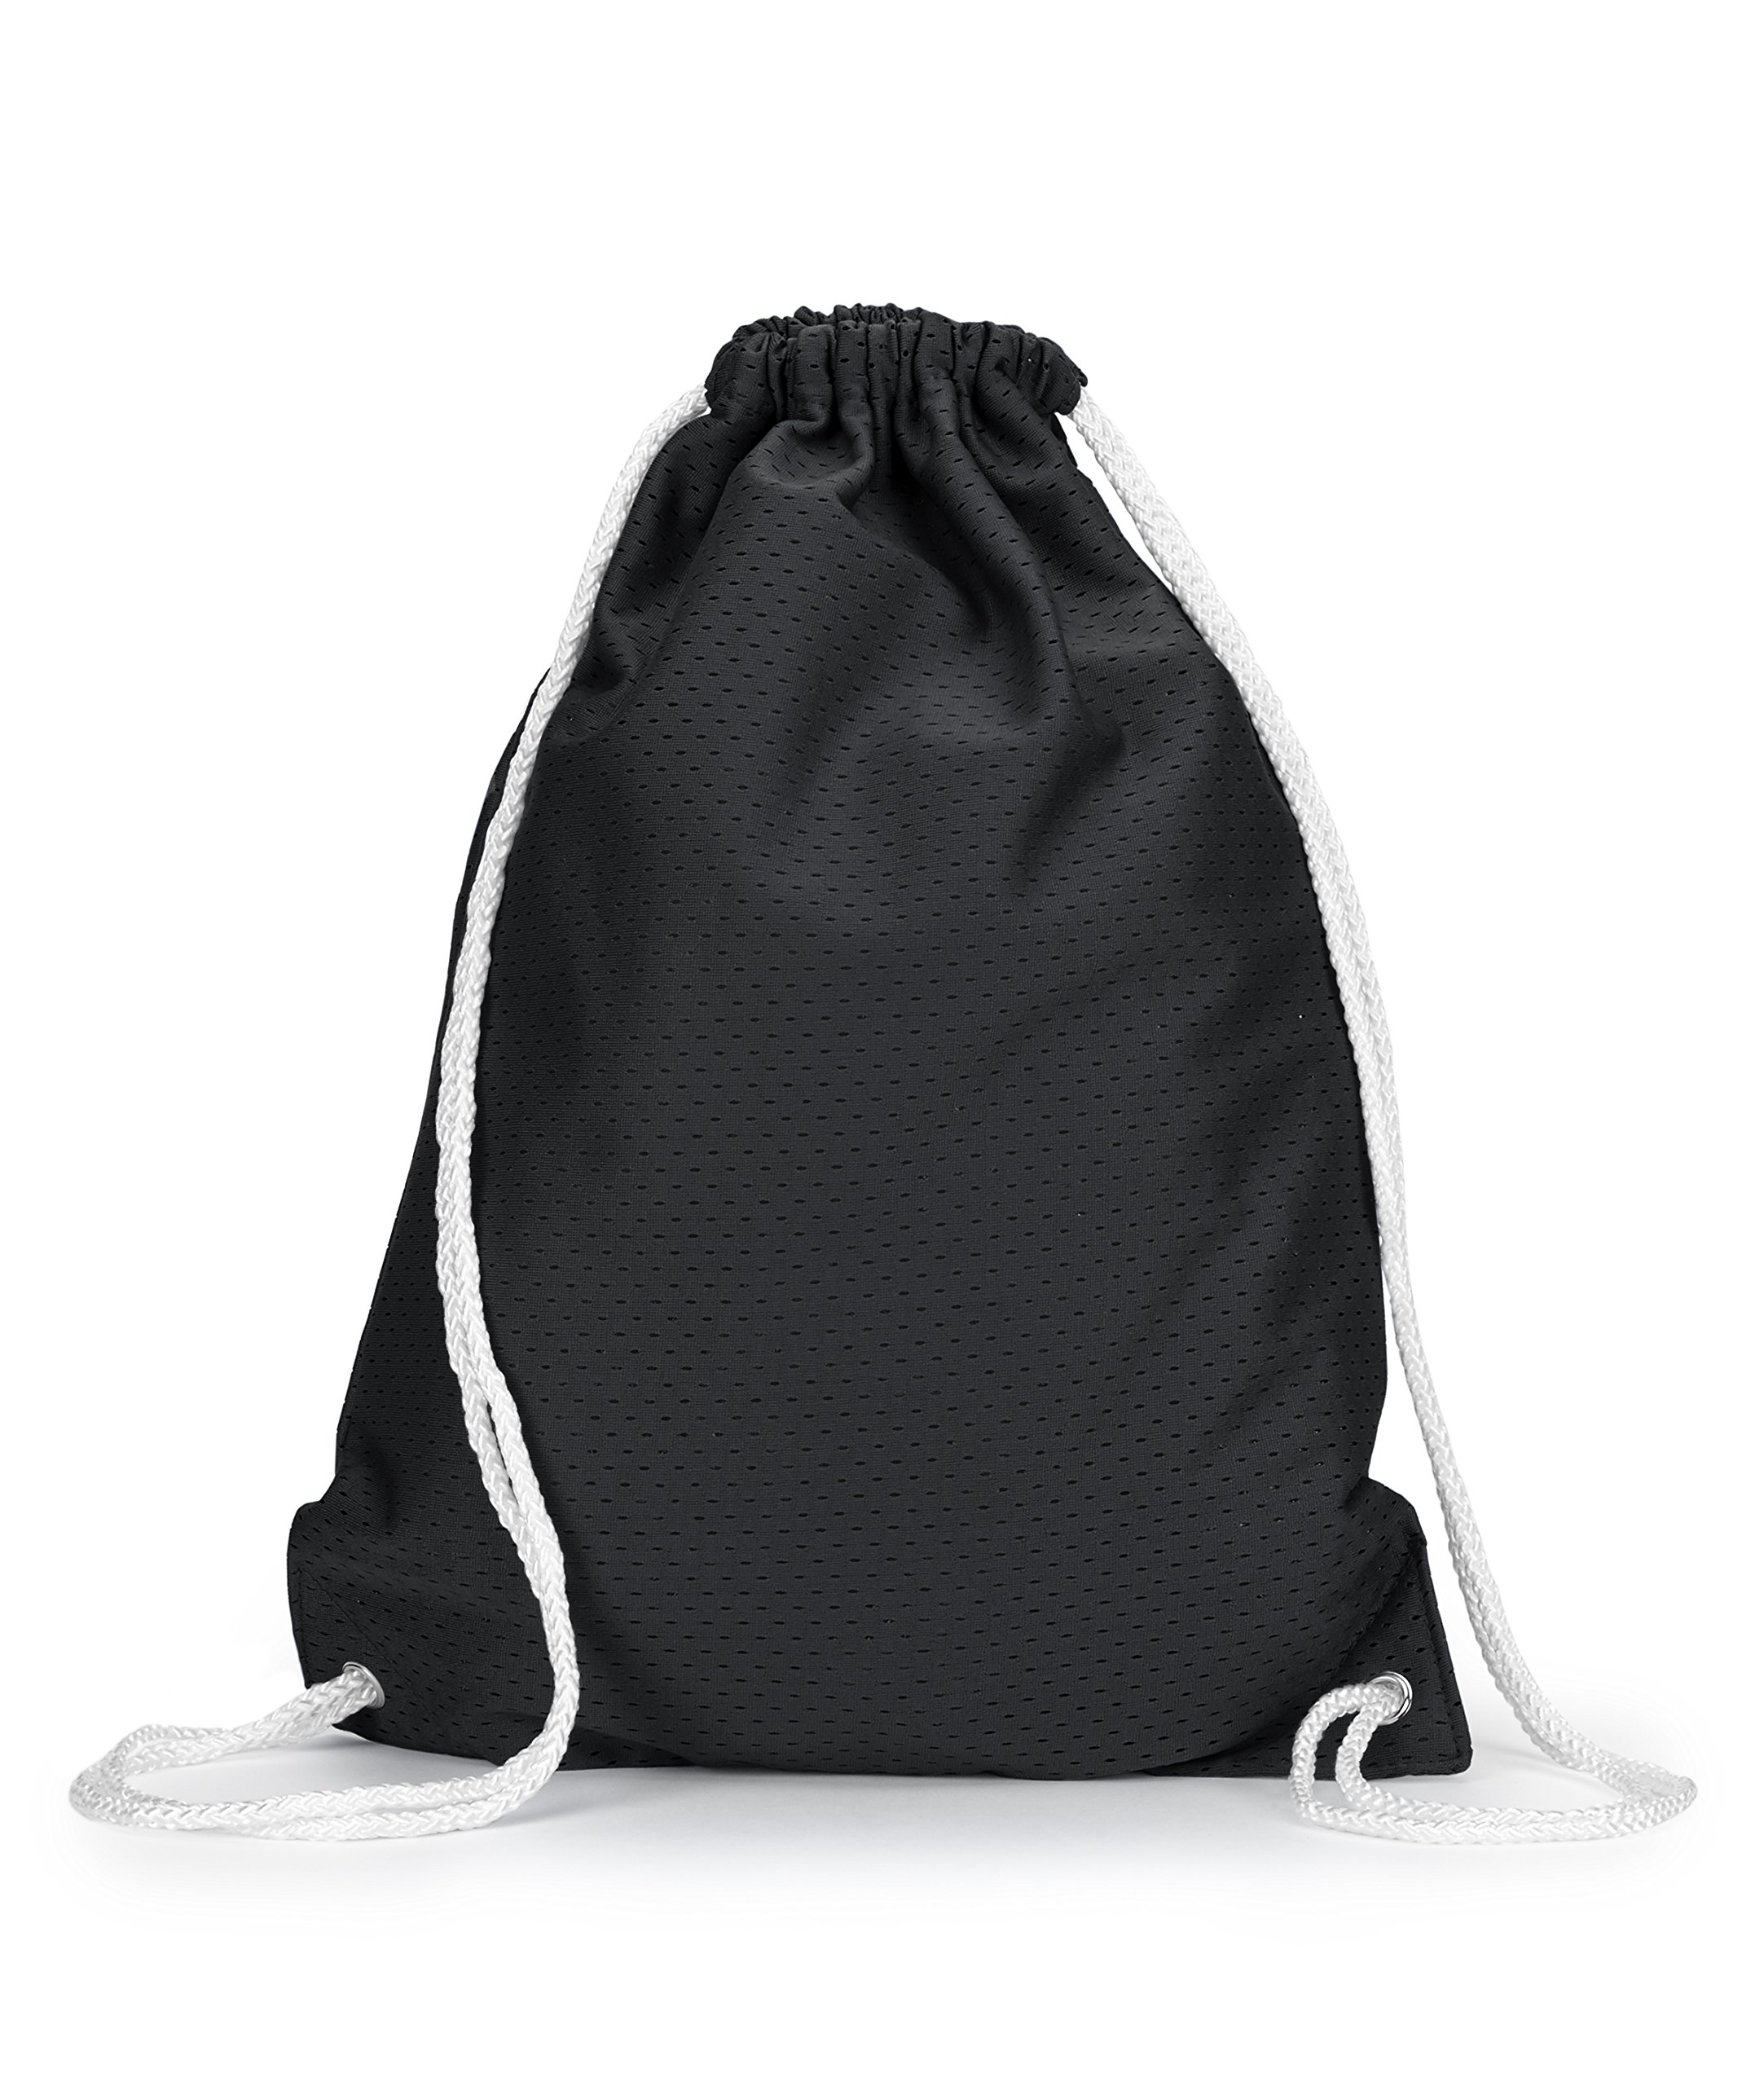 ZUZIFY Jersey Mesh Drawstring Sport Backpack. KM0102 OS Black